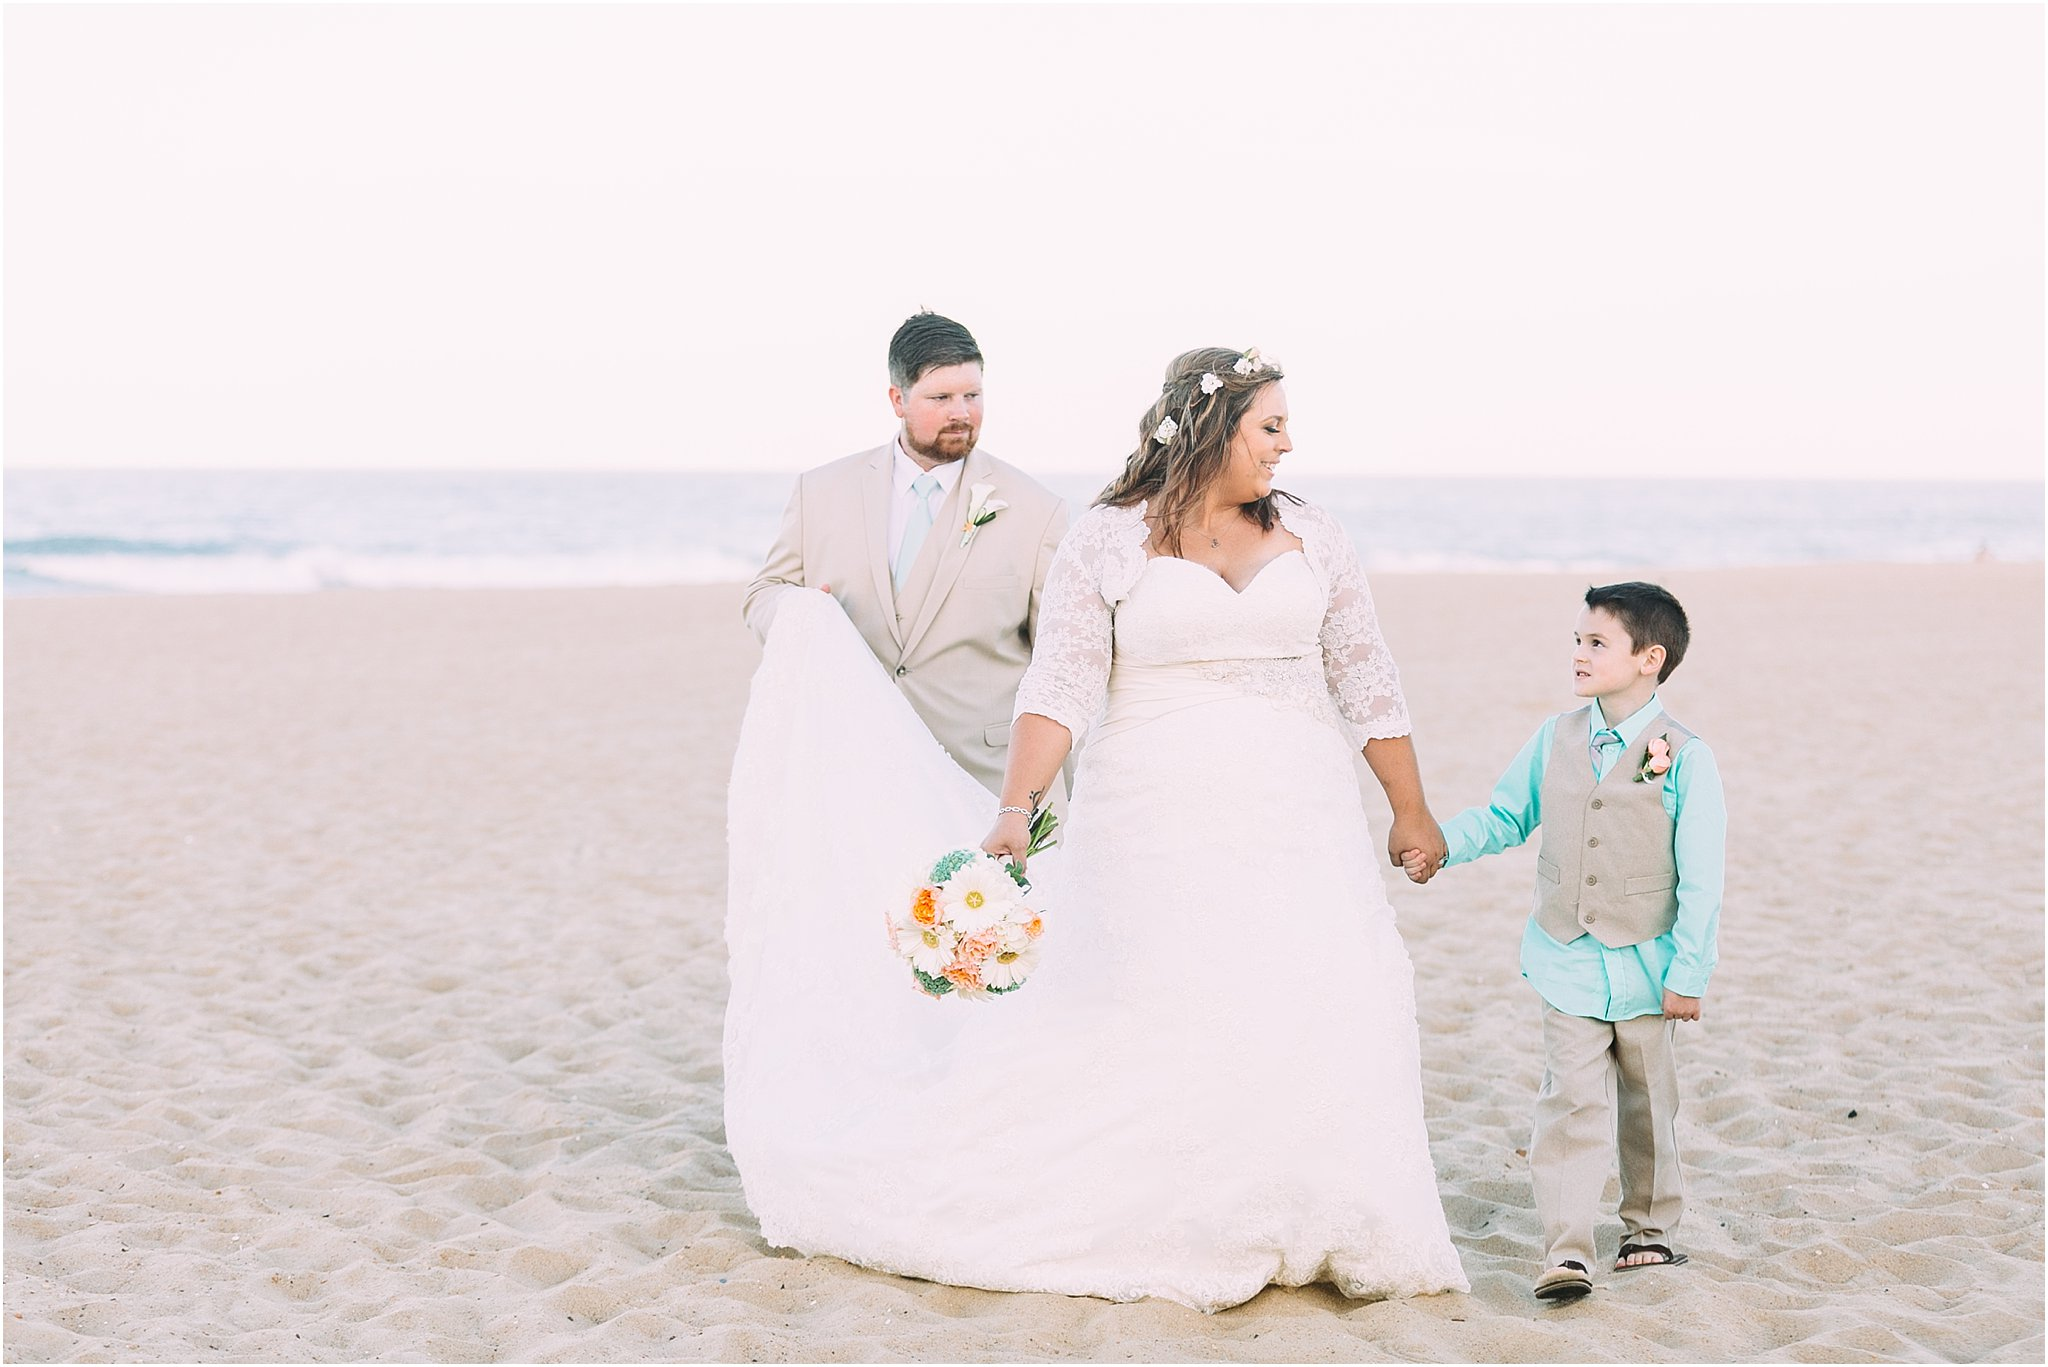 jessica_ryan_photography_virginia_beach_wedding_the_wyndham_oceanfront_beach_wedding_0883